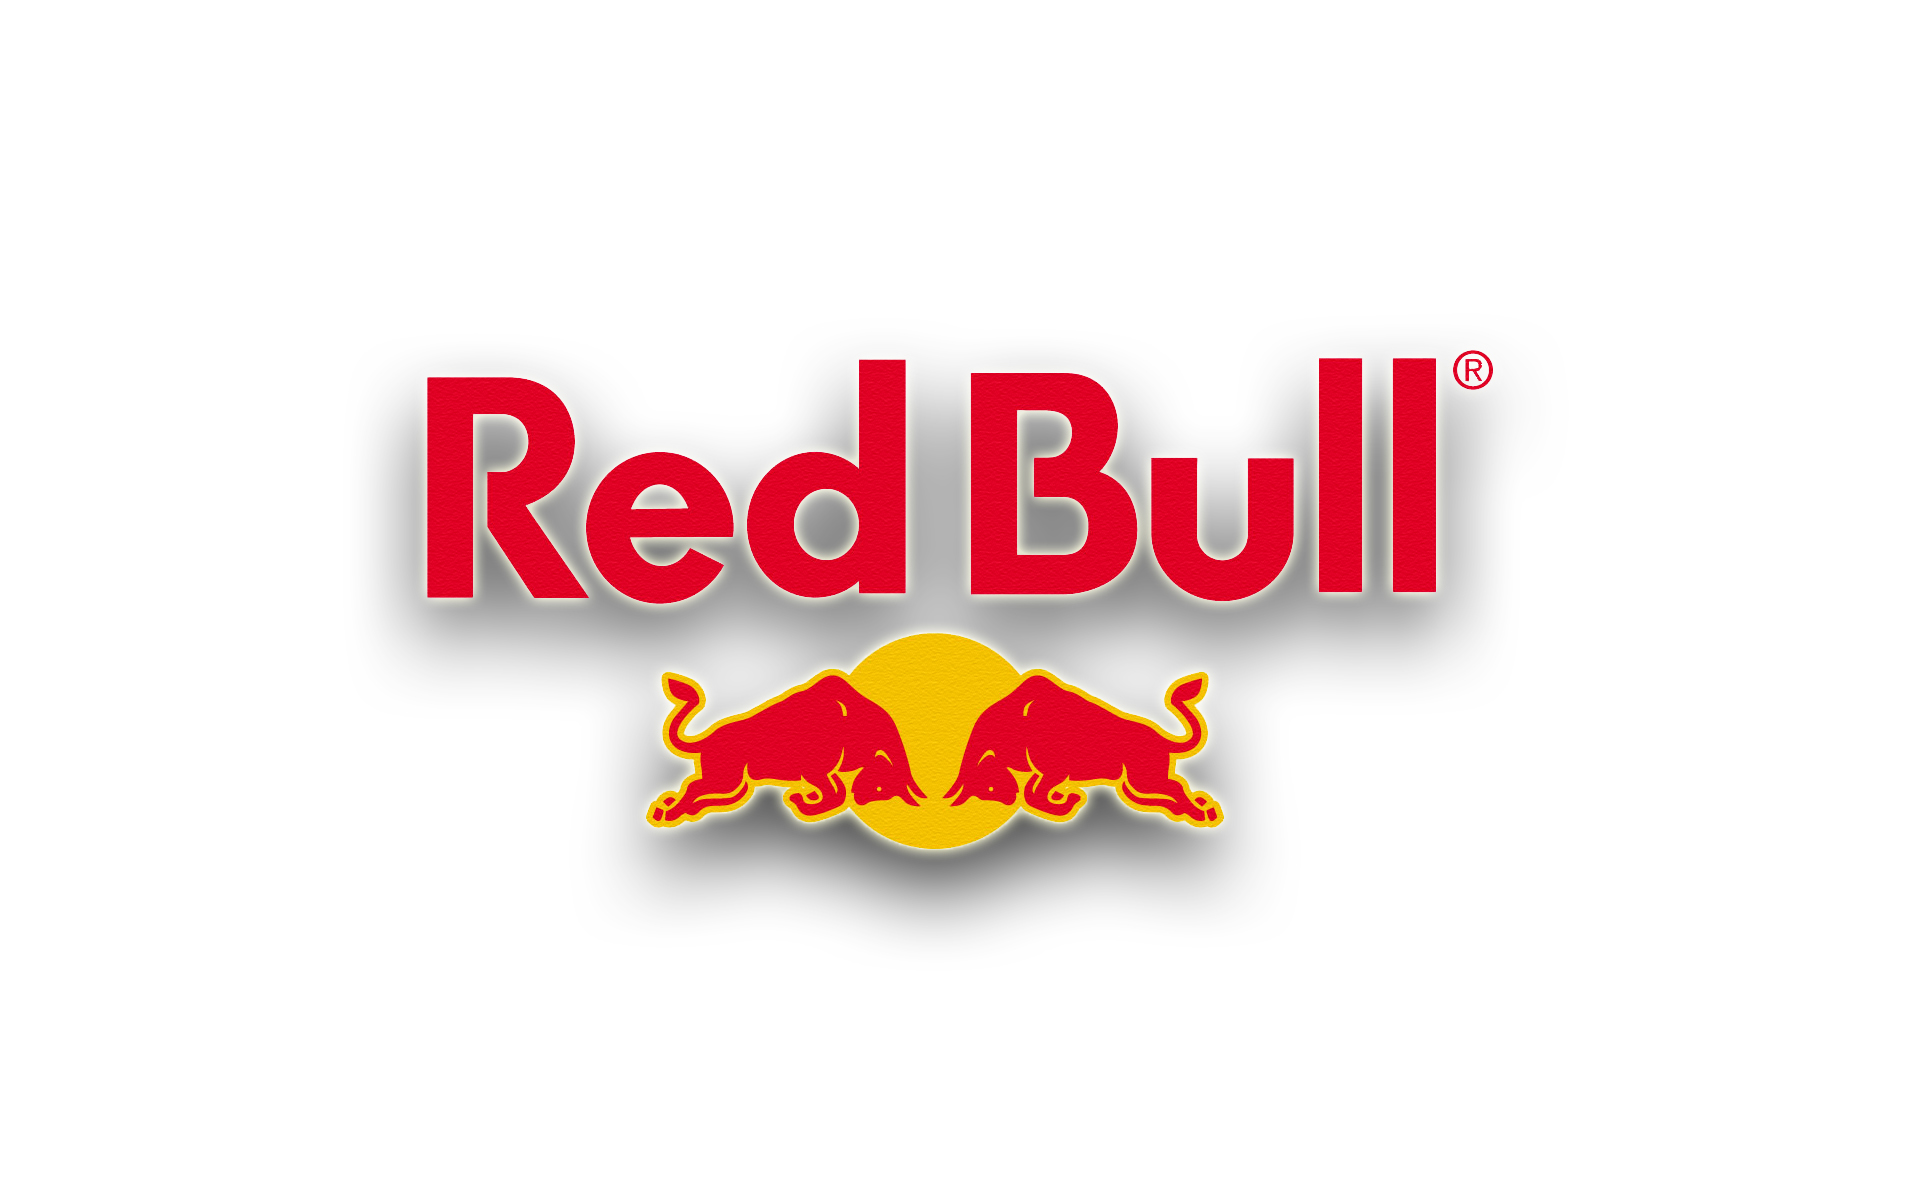 red bull png logo pictures #2823